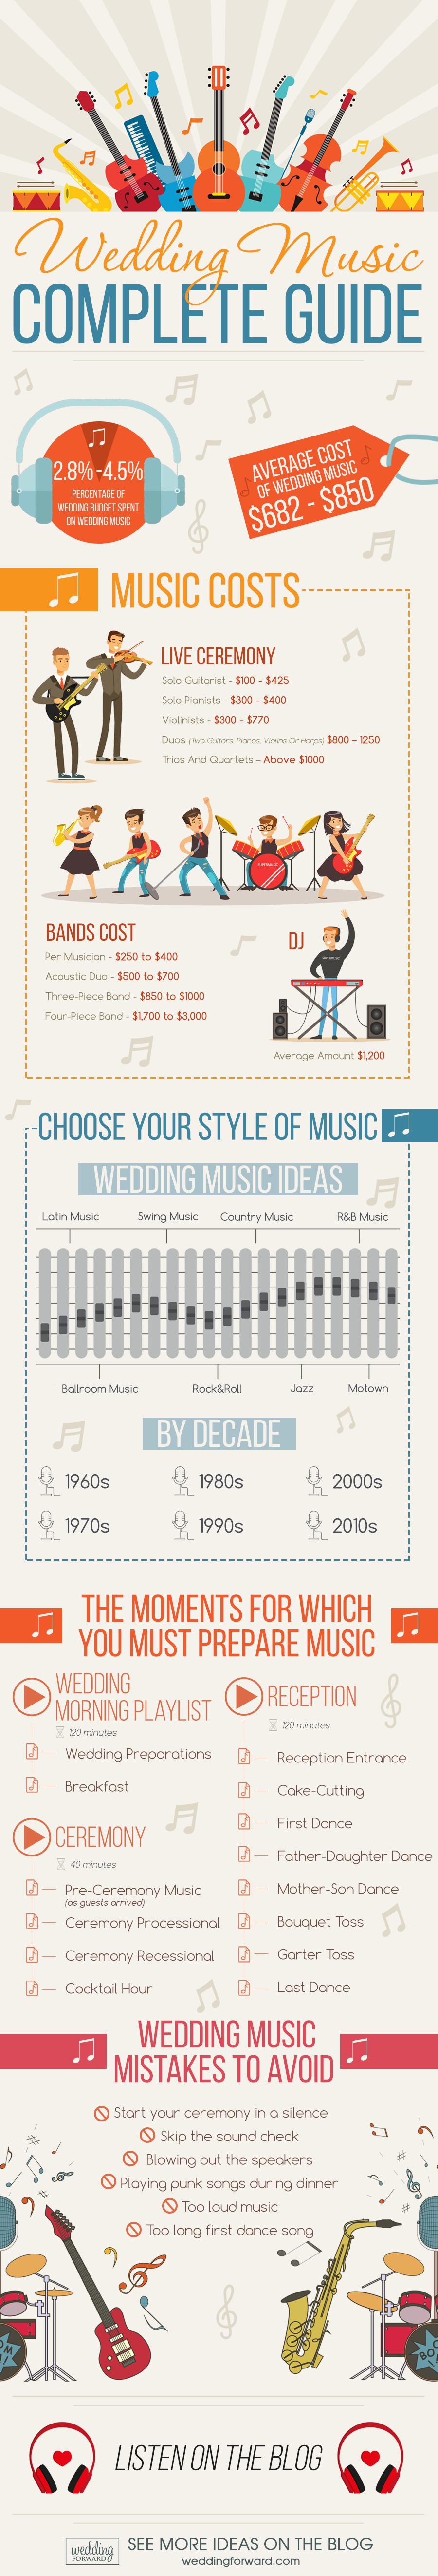 wedding songs music guide infographic